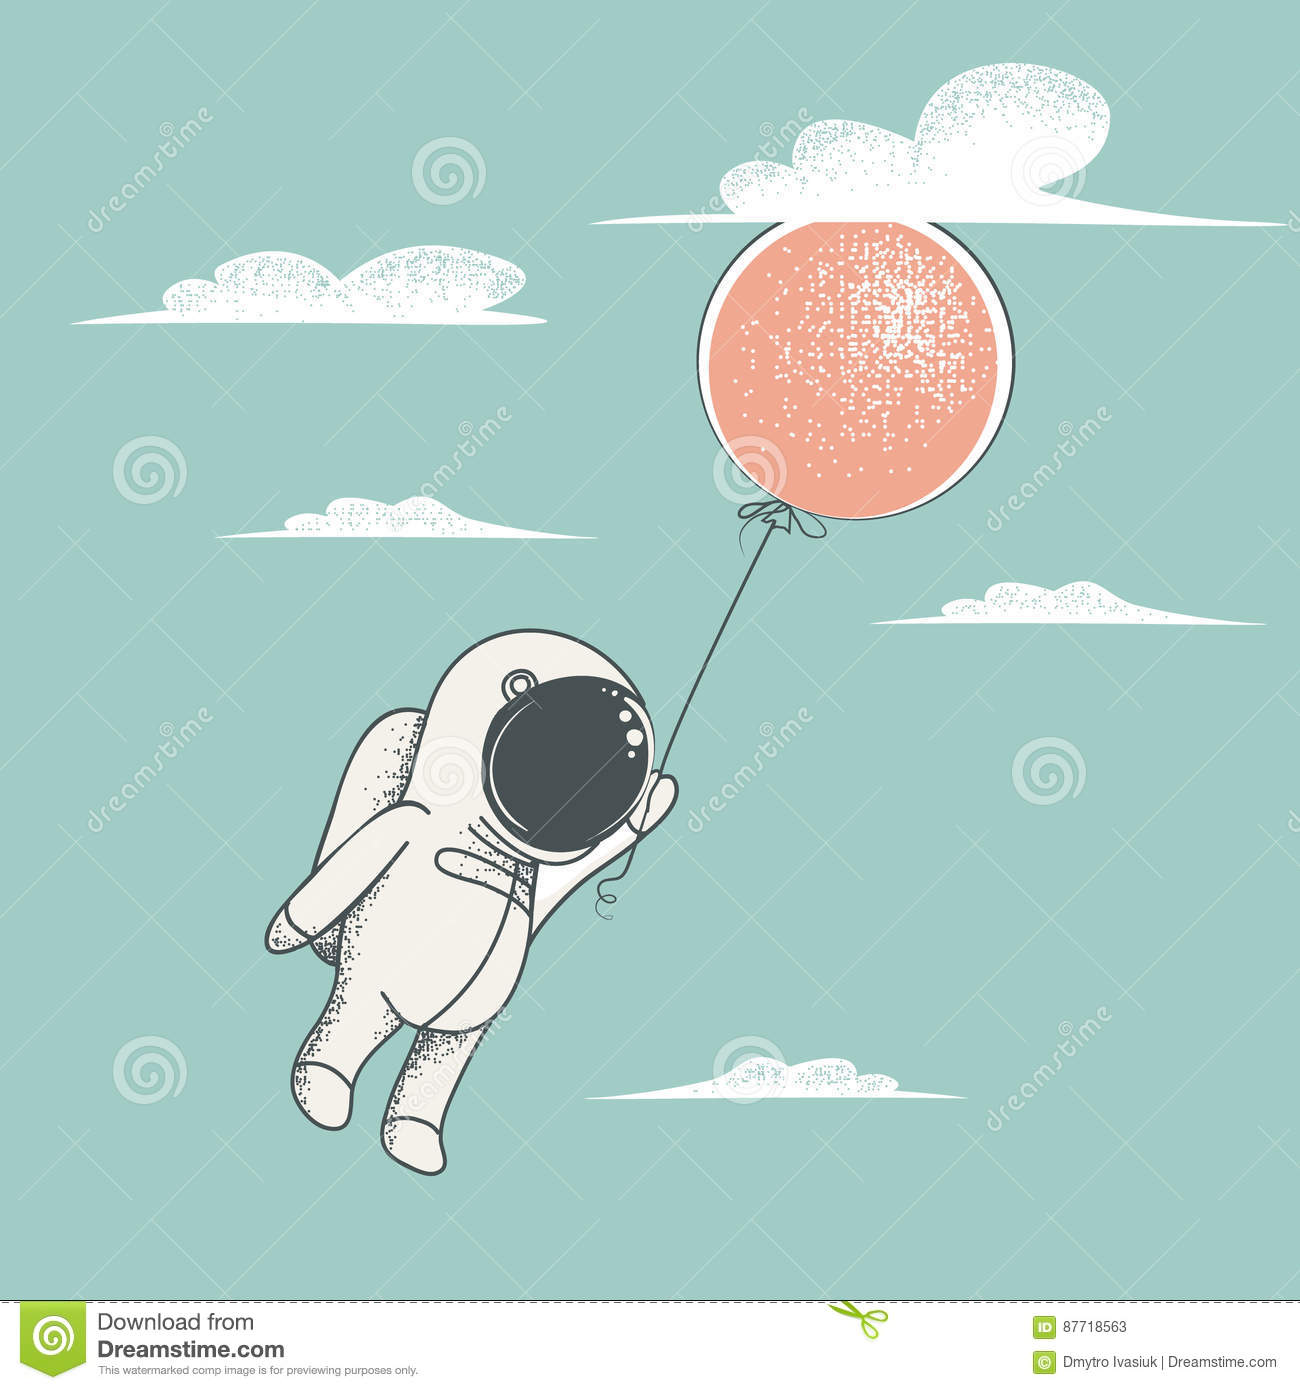 petite mouche d 39 astronaute avec le ballon rouge illustration de vecteur illustration du. Black Bedroom Furniture Sets. Home Design Ideas